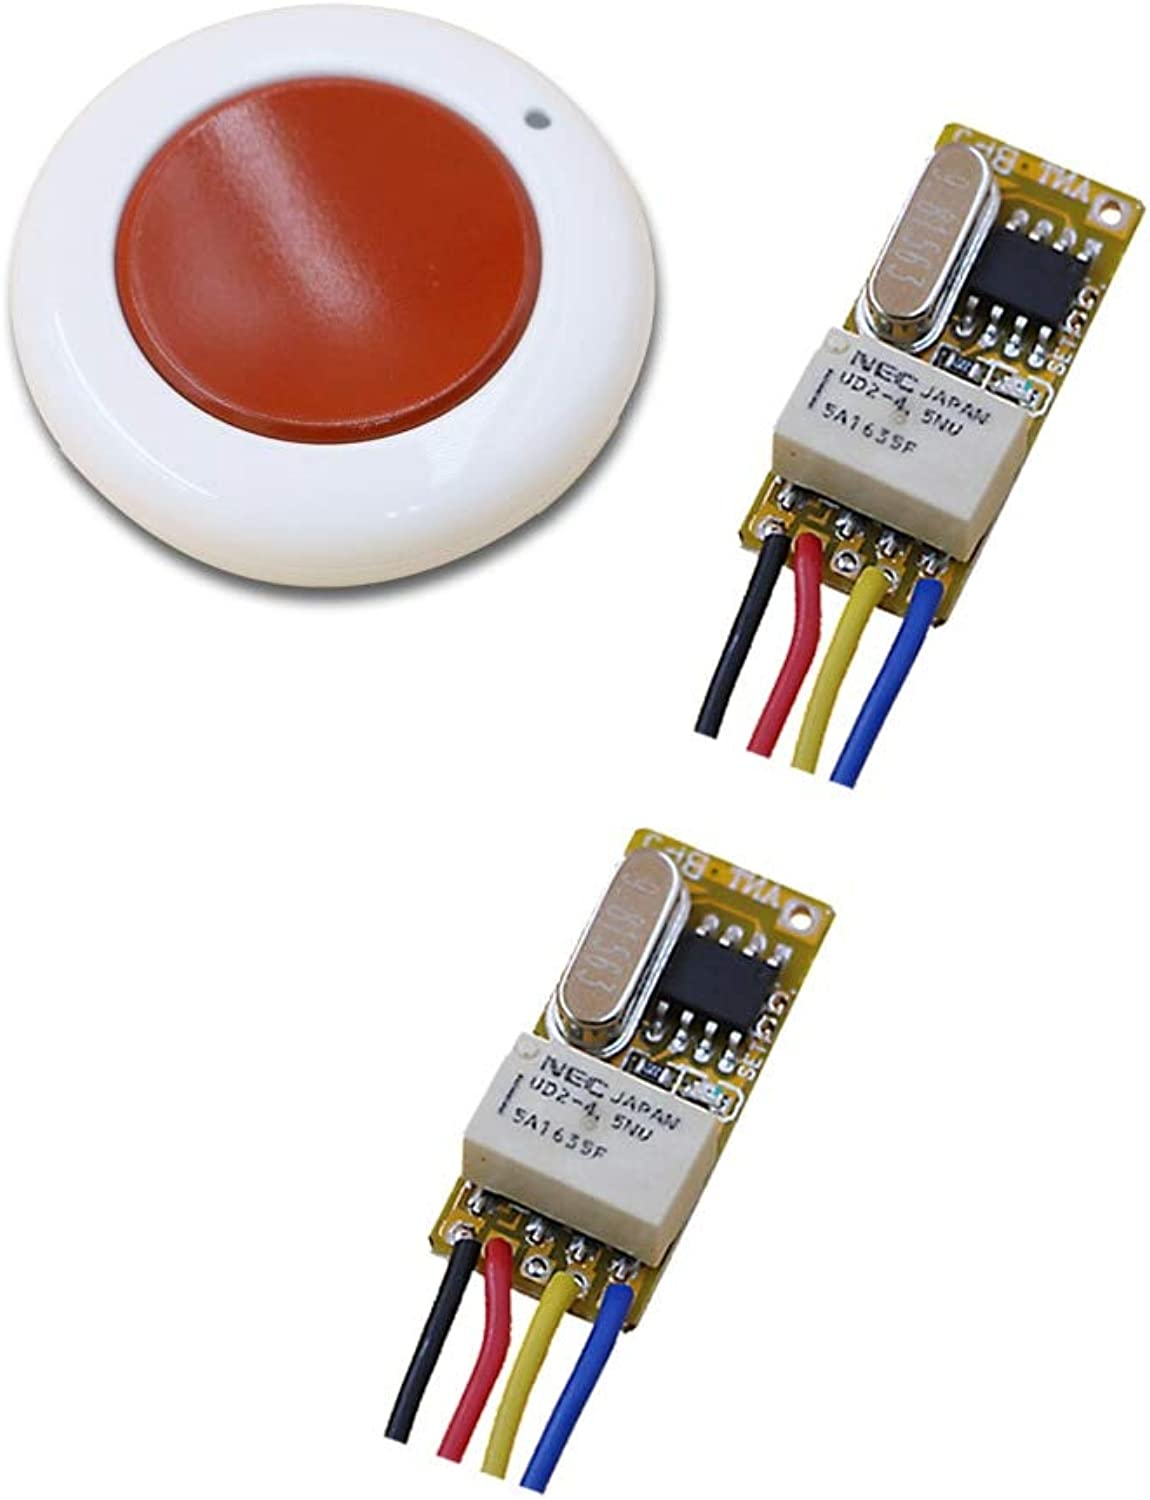 Mini Relay Switch DC 3.7V 4.2V 4.5V 5V 6V 7.4V 9V 12V Contact NO COM NC Remote Wireless Switch Normall Closed Open 315 433MHZ  (color  315MHZ)